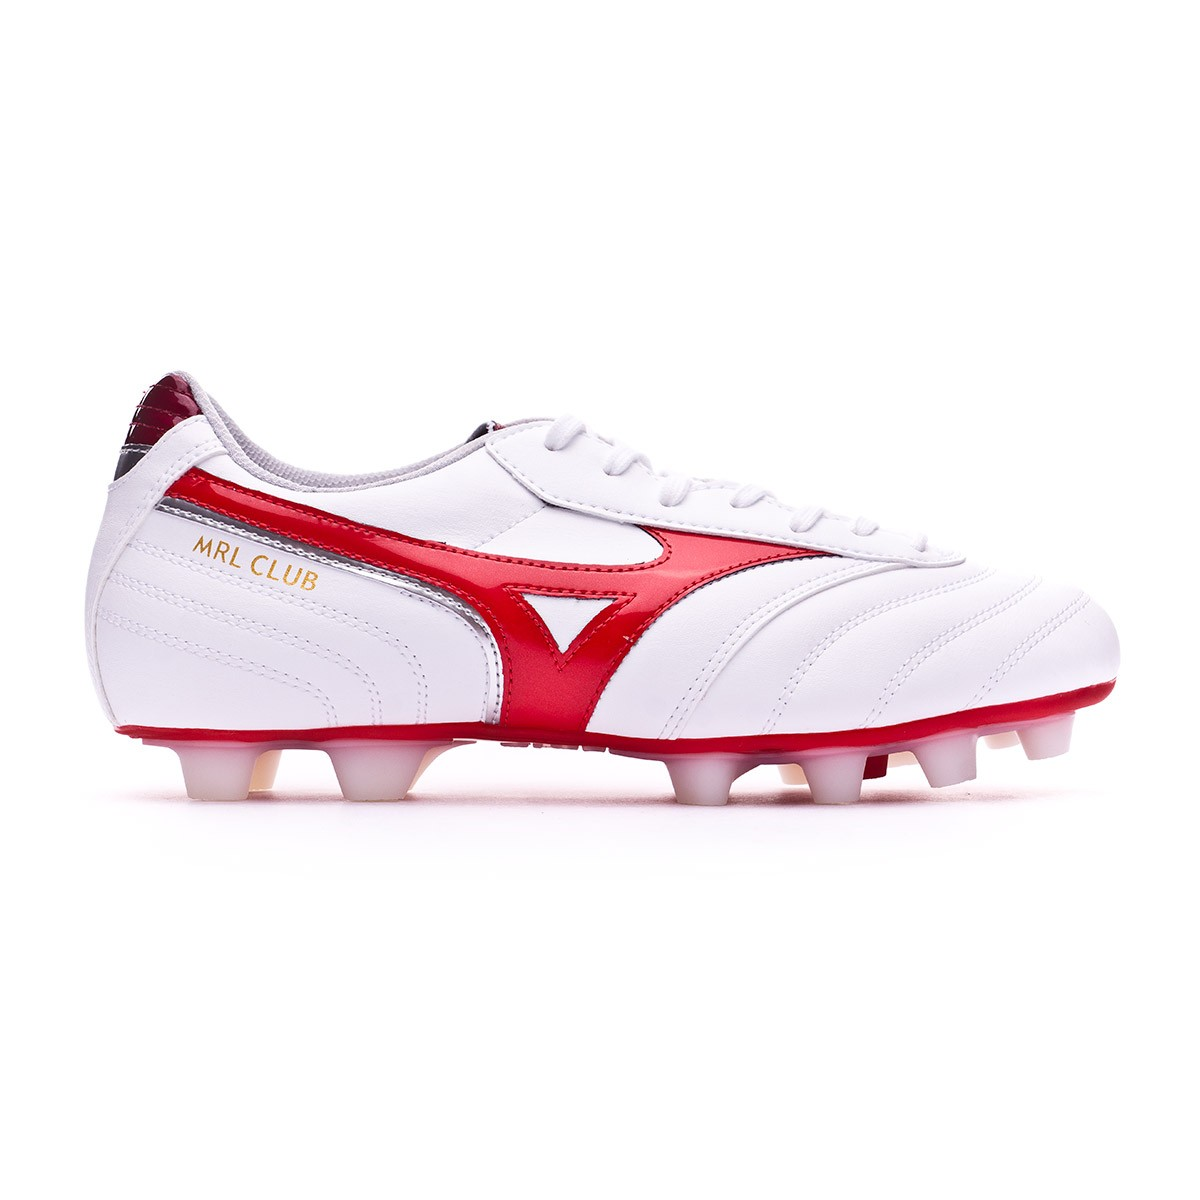 4454cac5a Scarpe Mizuno Morelia Club MD White-High risk red - Negozio di calcio  Fútbol Emotion